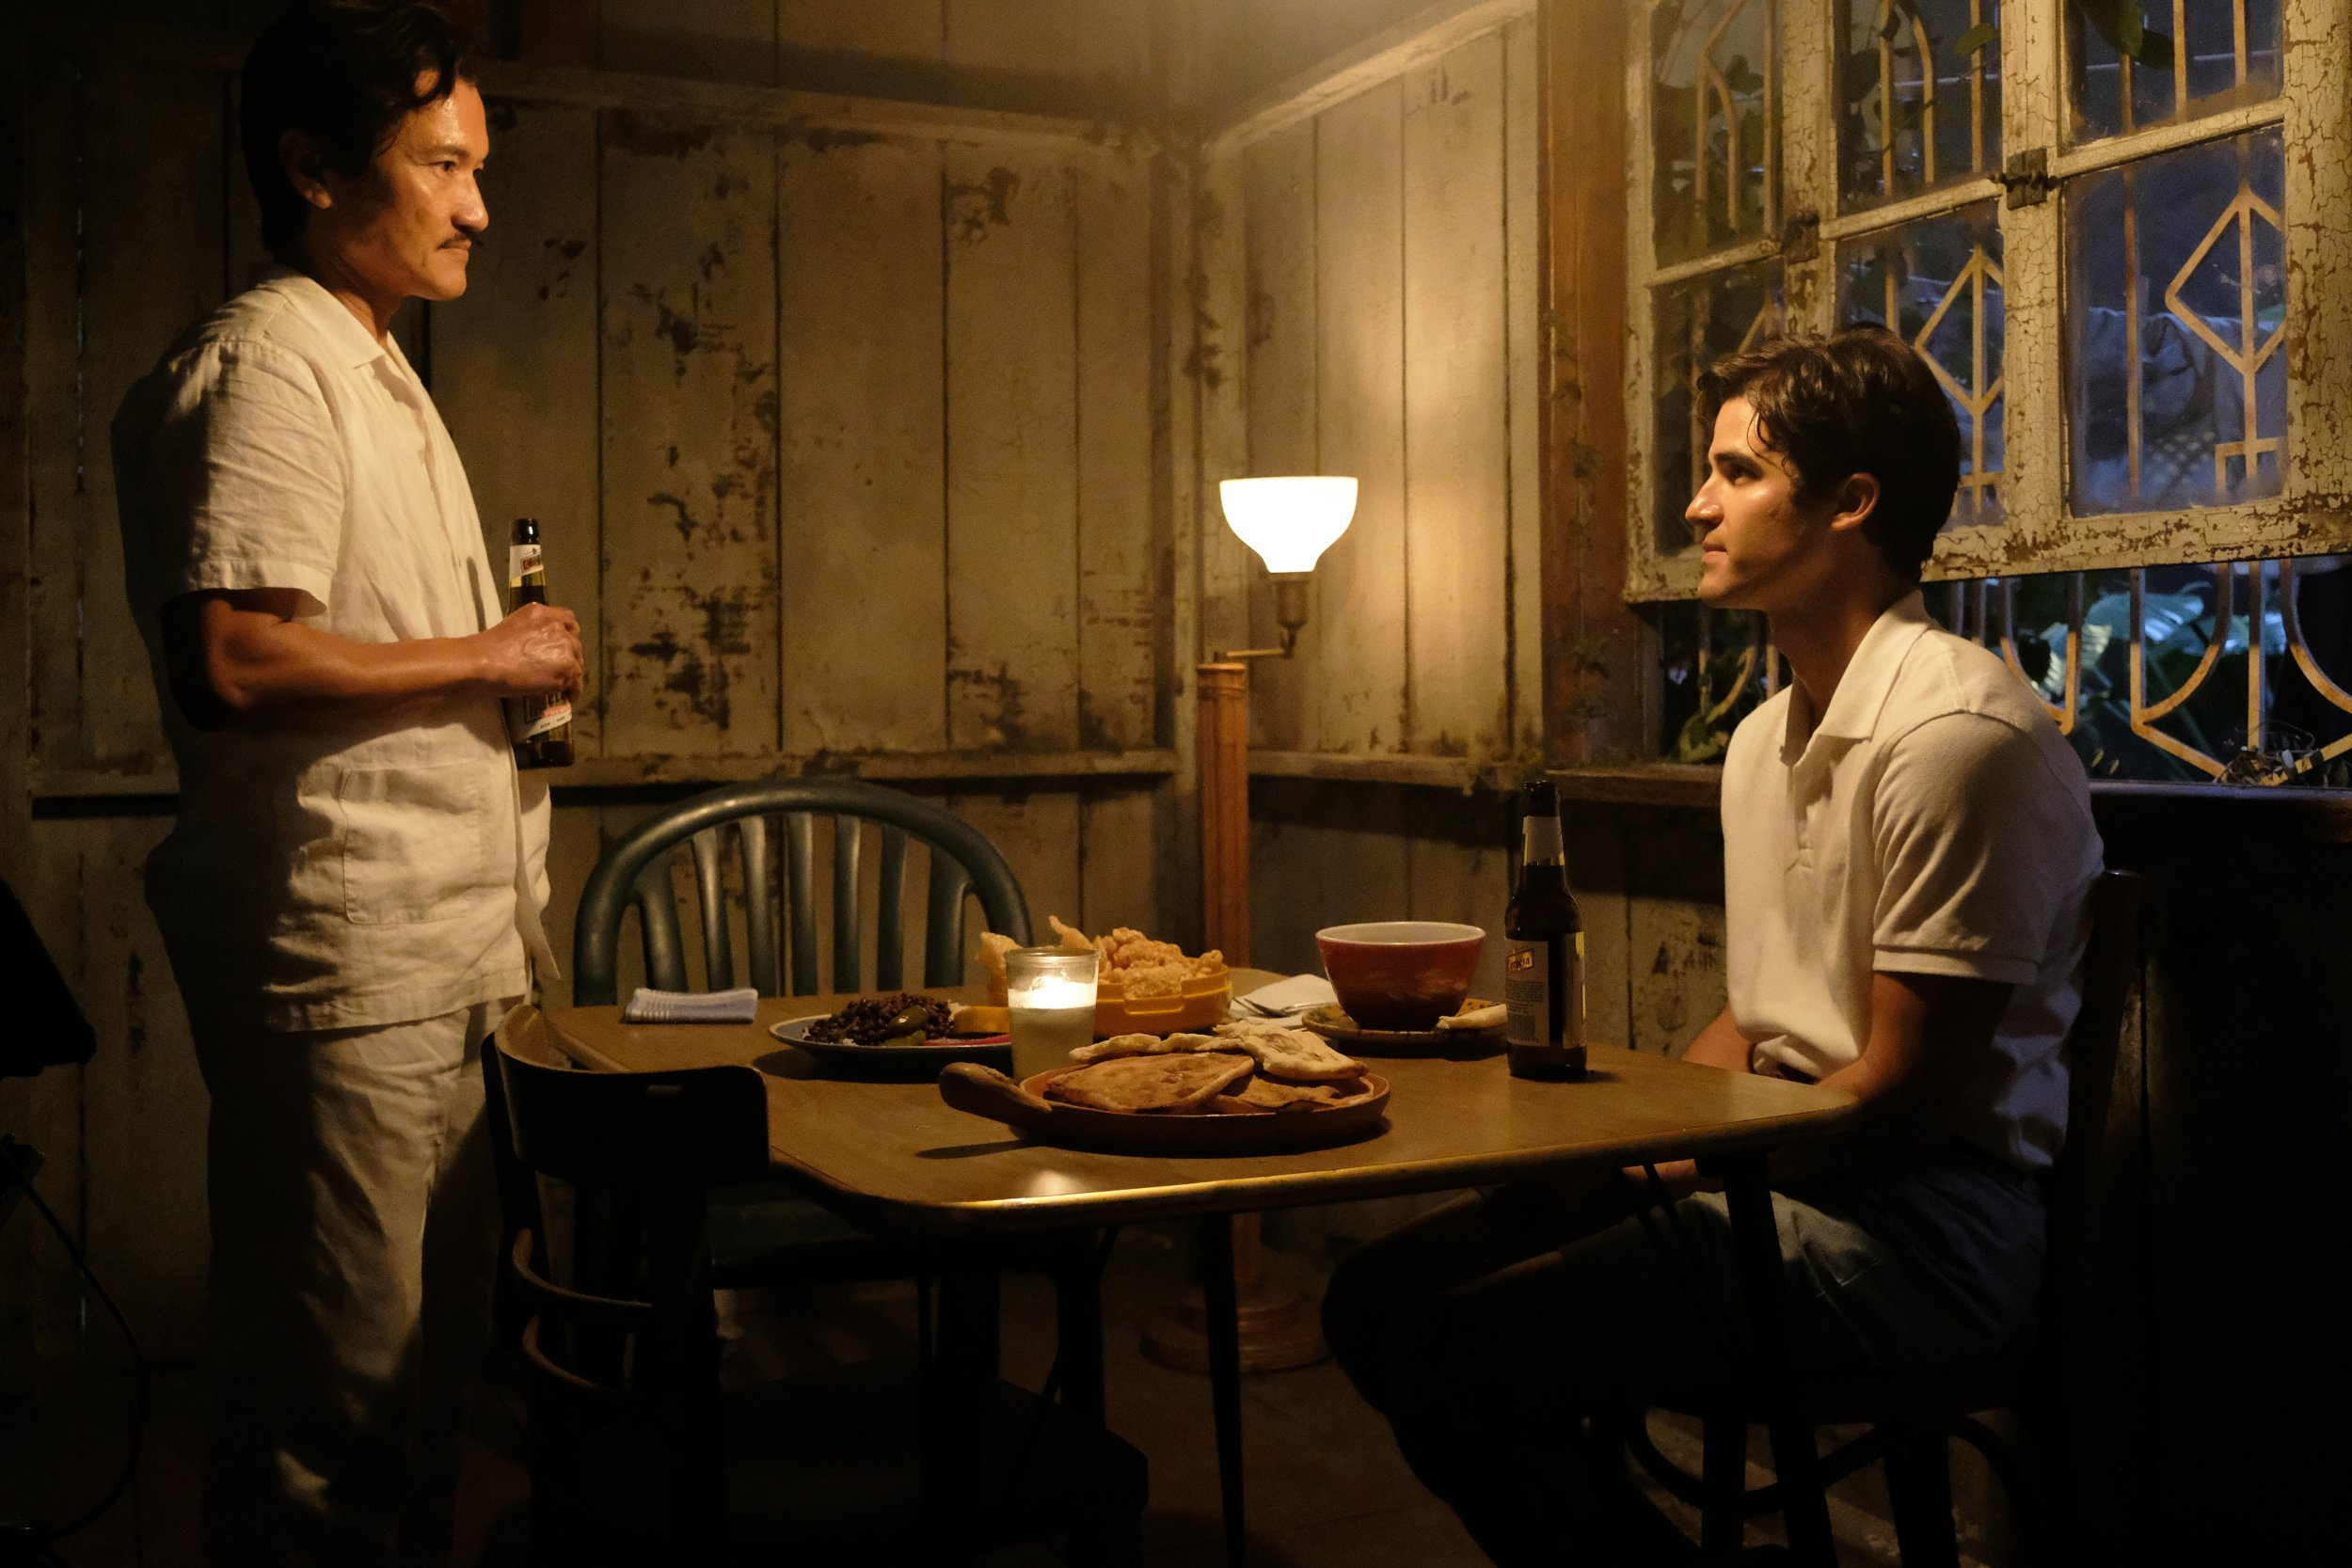 Jon Jon Briones plays Modesto Cunanan while Darren Criss appears as Andrew Cunanan in the series American Crime Story